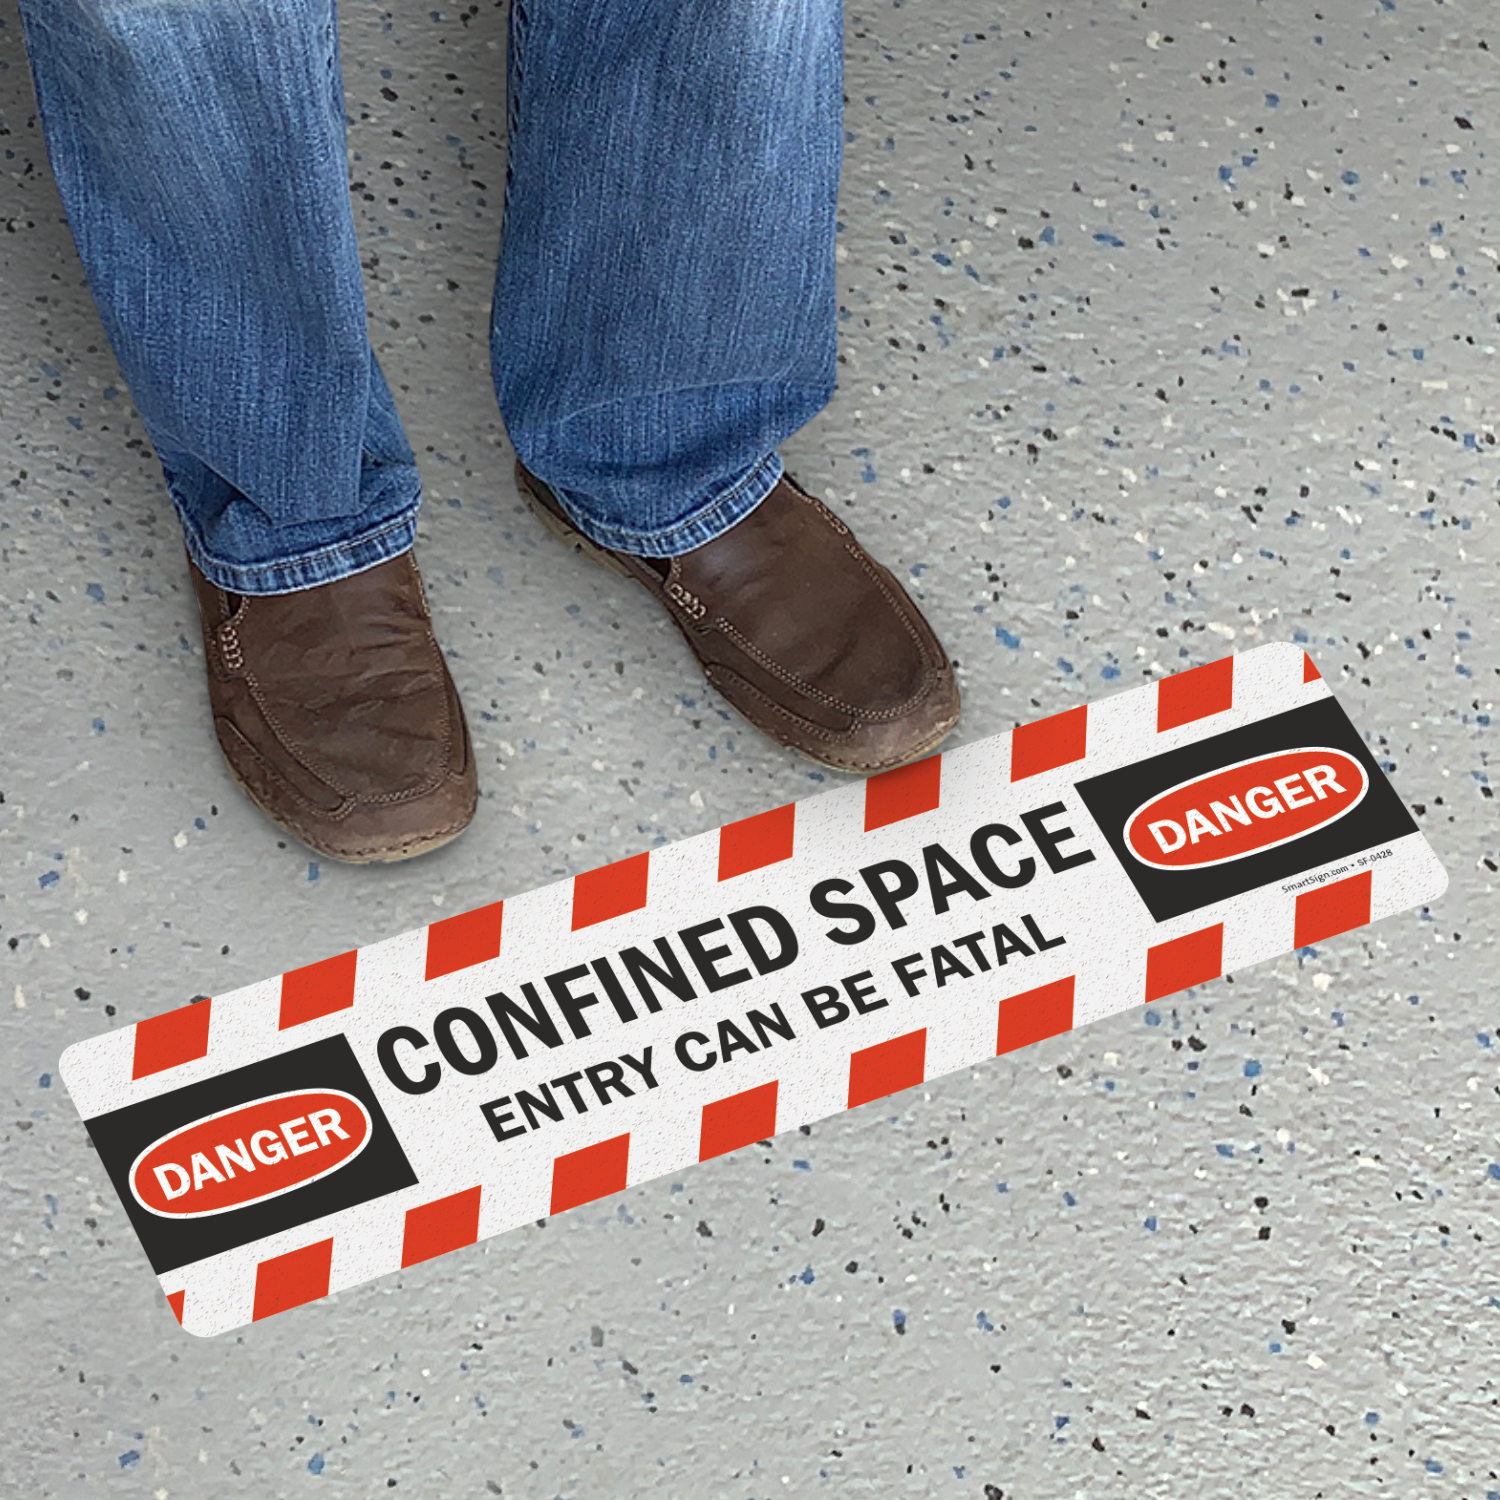 Confined Space Entry Can Be Fatal Floor Sign